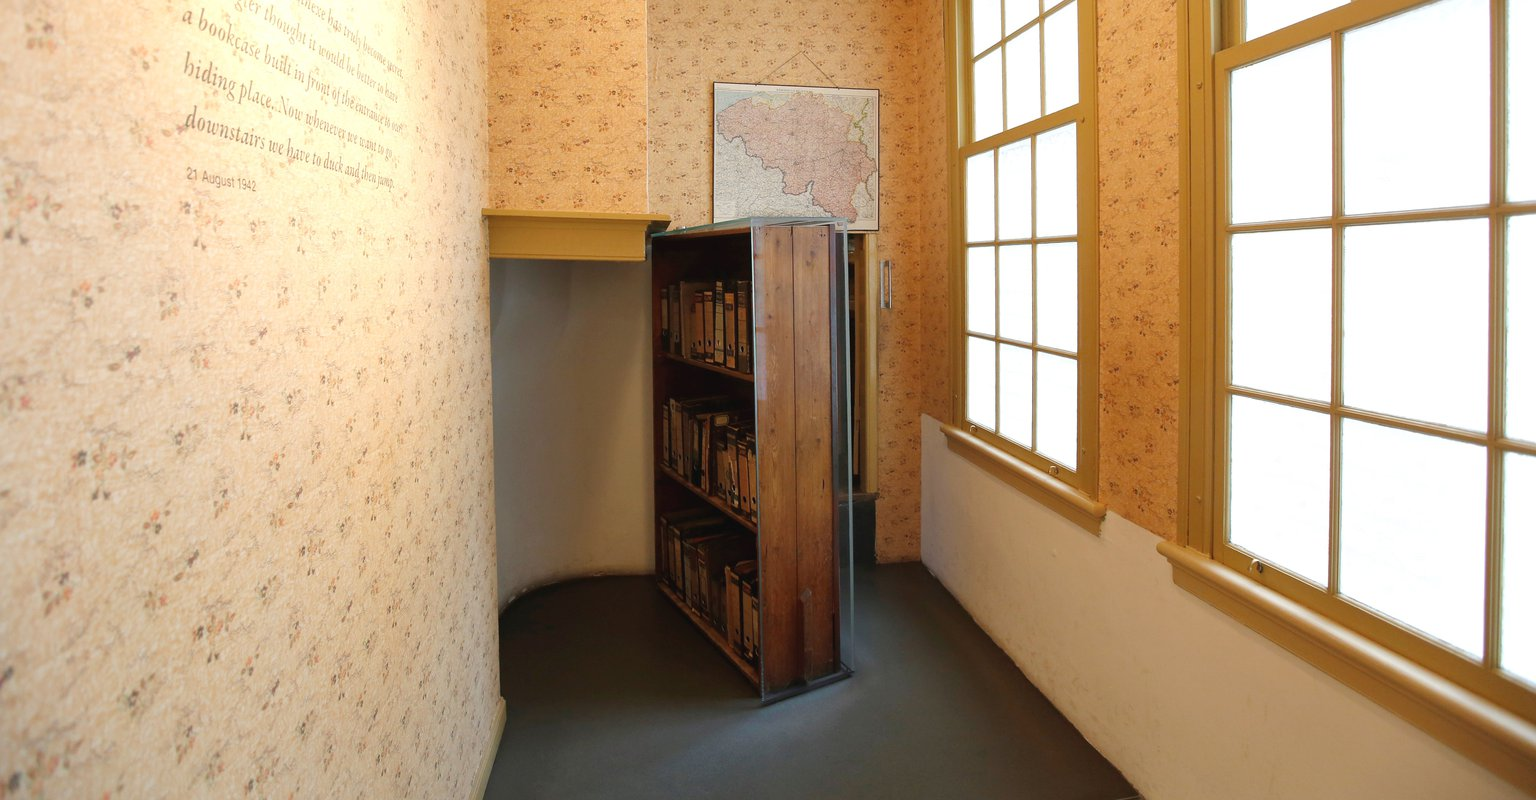 Inside The Museum Anne Frank House